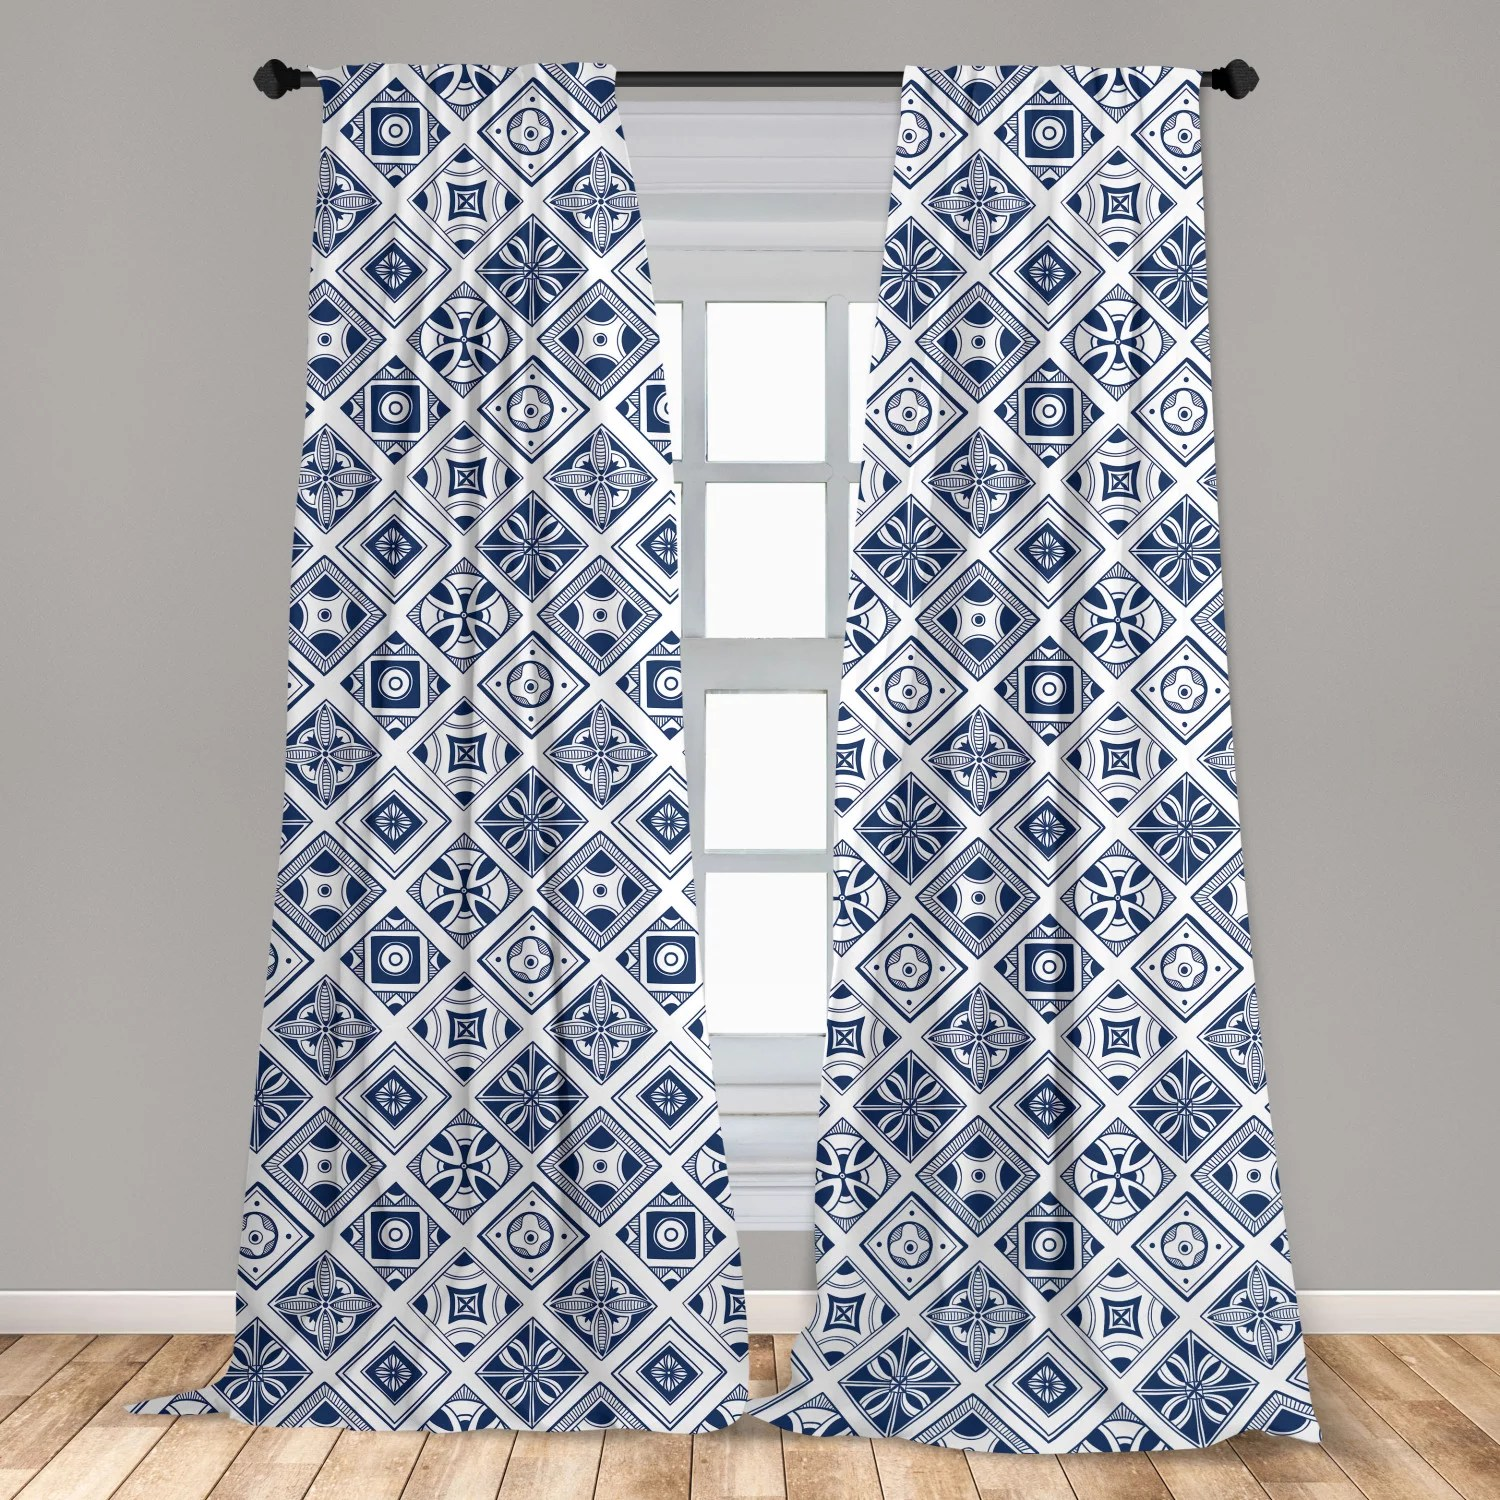 navy blue curtains 2 panels set mediterranean traditional art elements with spanish portuguese influences window drapes for living room bedroom